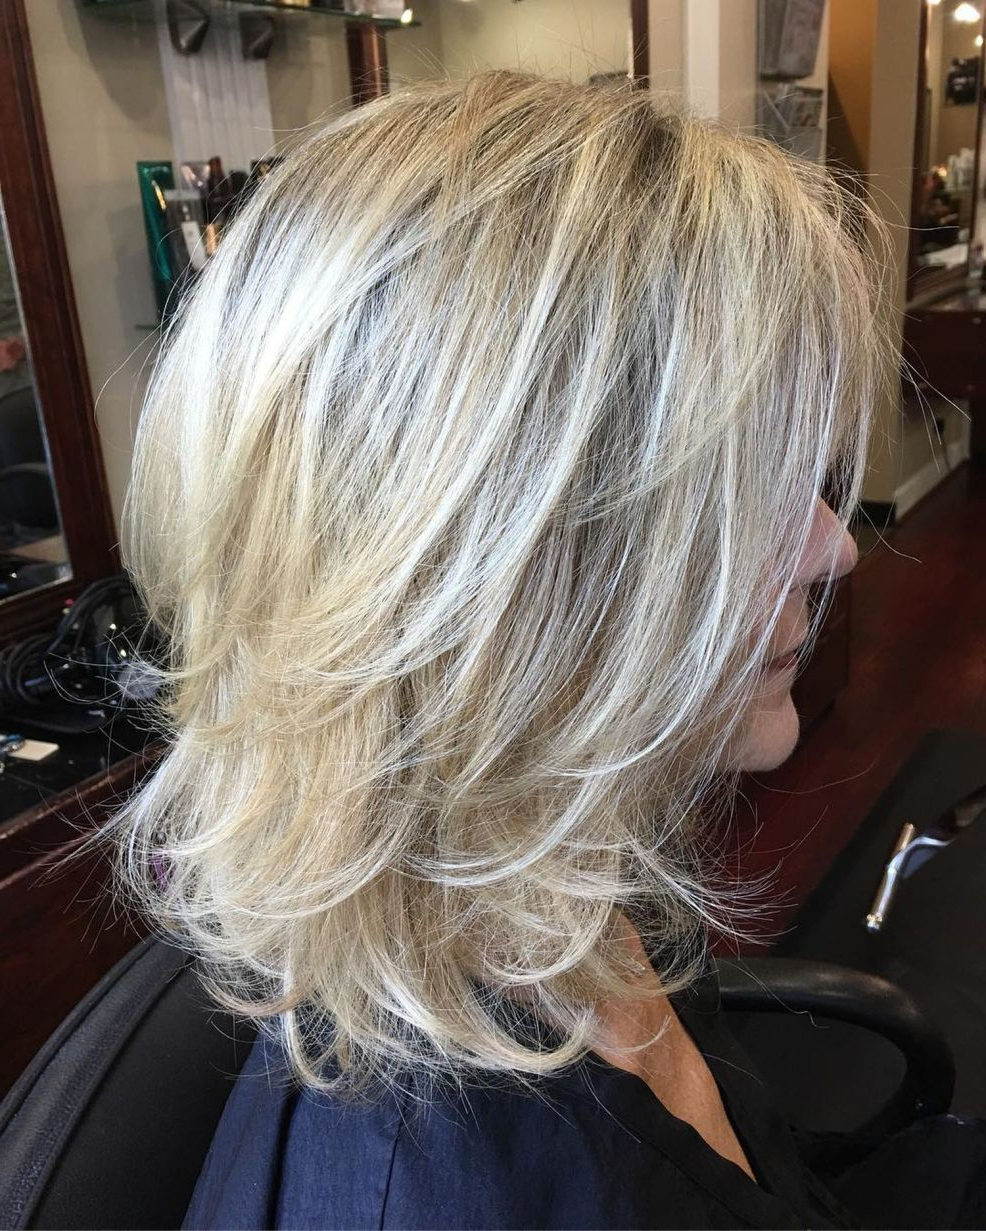 70 Perfect Medium Length Hairstyles For Thin Hair In 2019 Throughout Favorite Mid Length Light Blonde Shag Haircuts With Bangs (View 6 of 20)